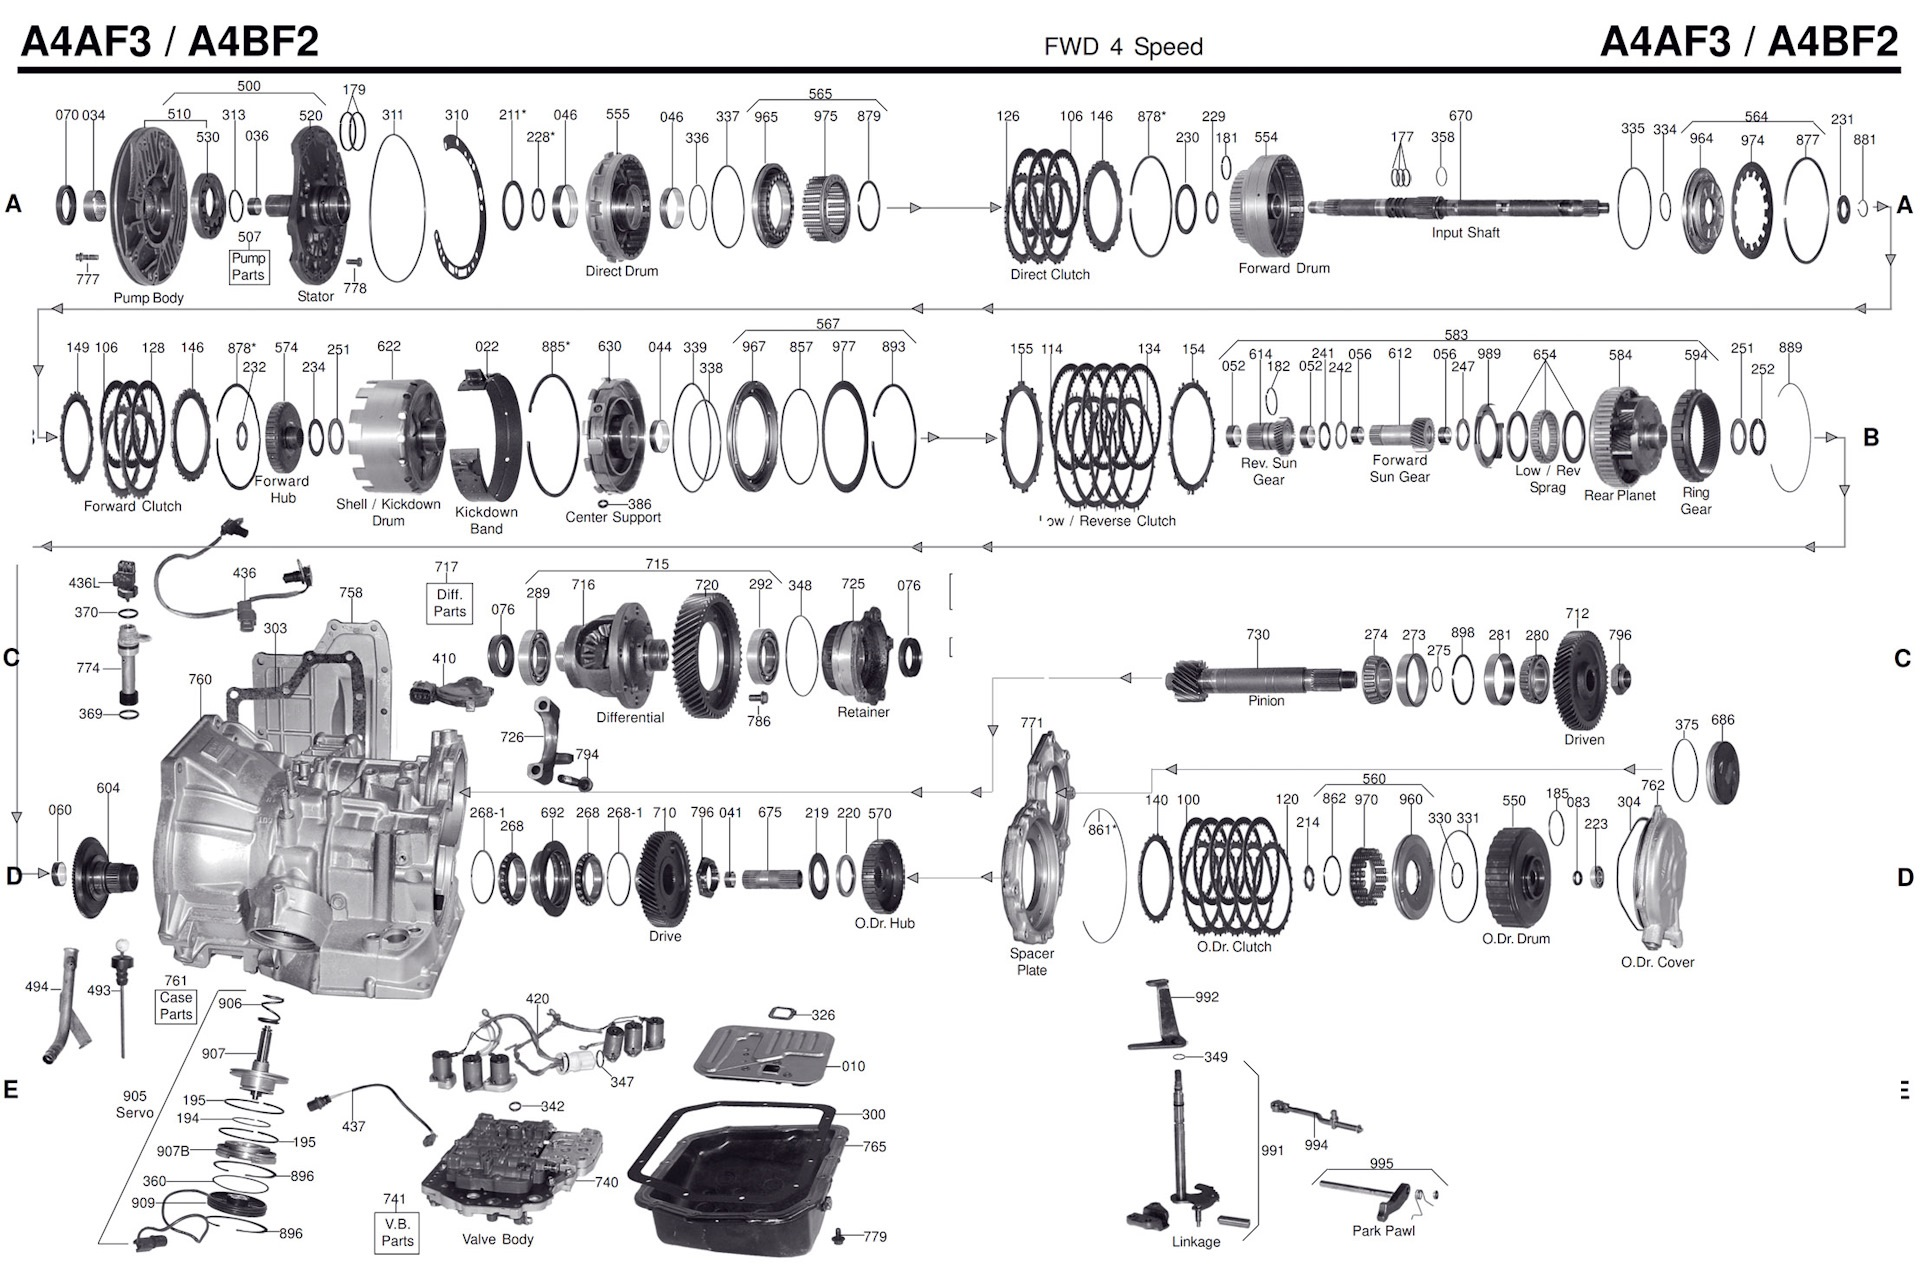 A4AF3 Transmission parts, repair guidelines, problems, manuals